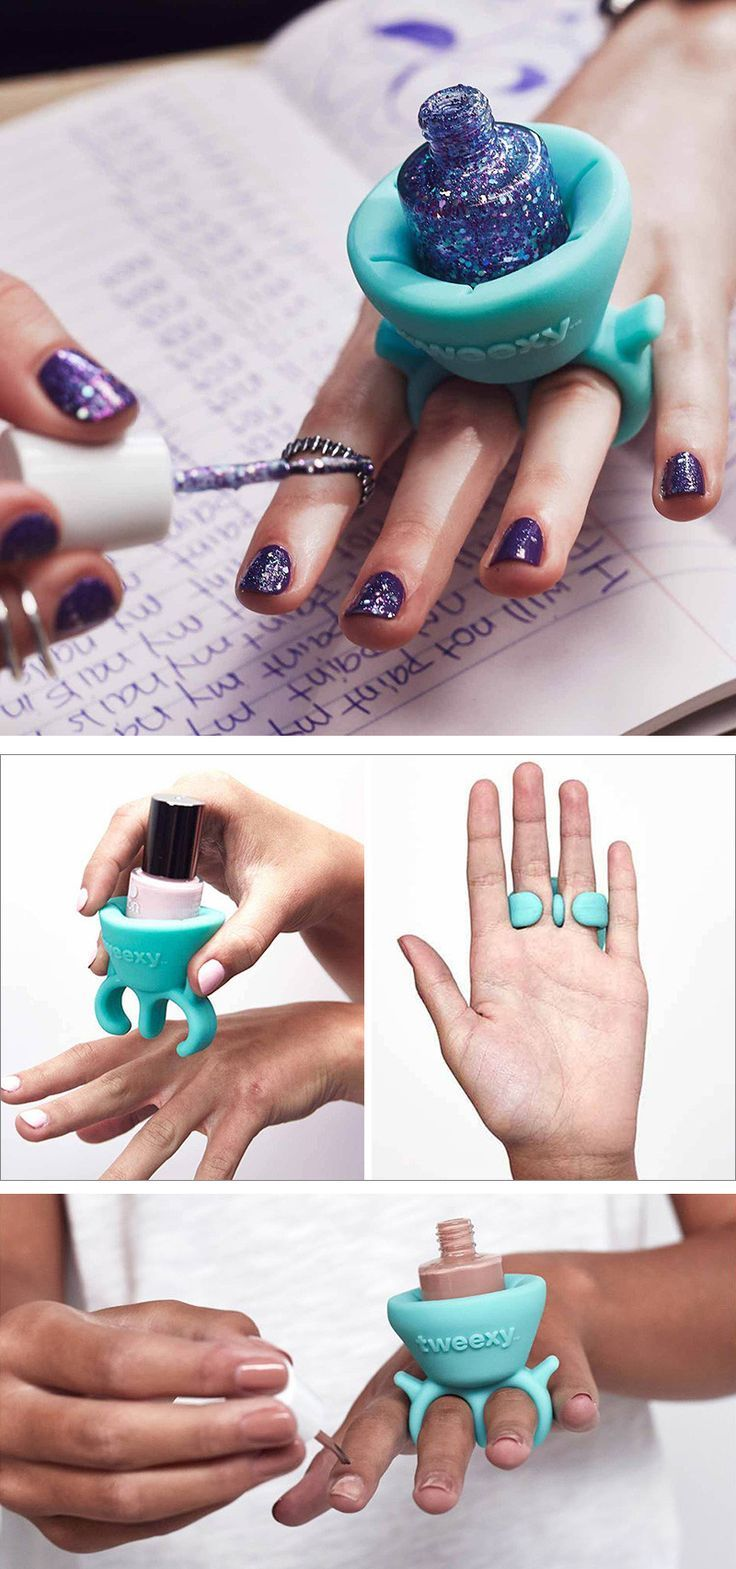 nice The design of this new wearable nail polish holder makes painting your nails a lot easier